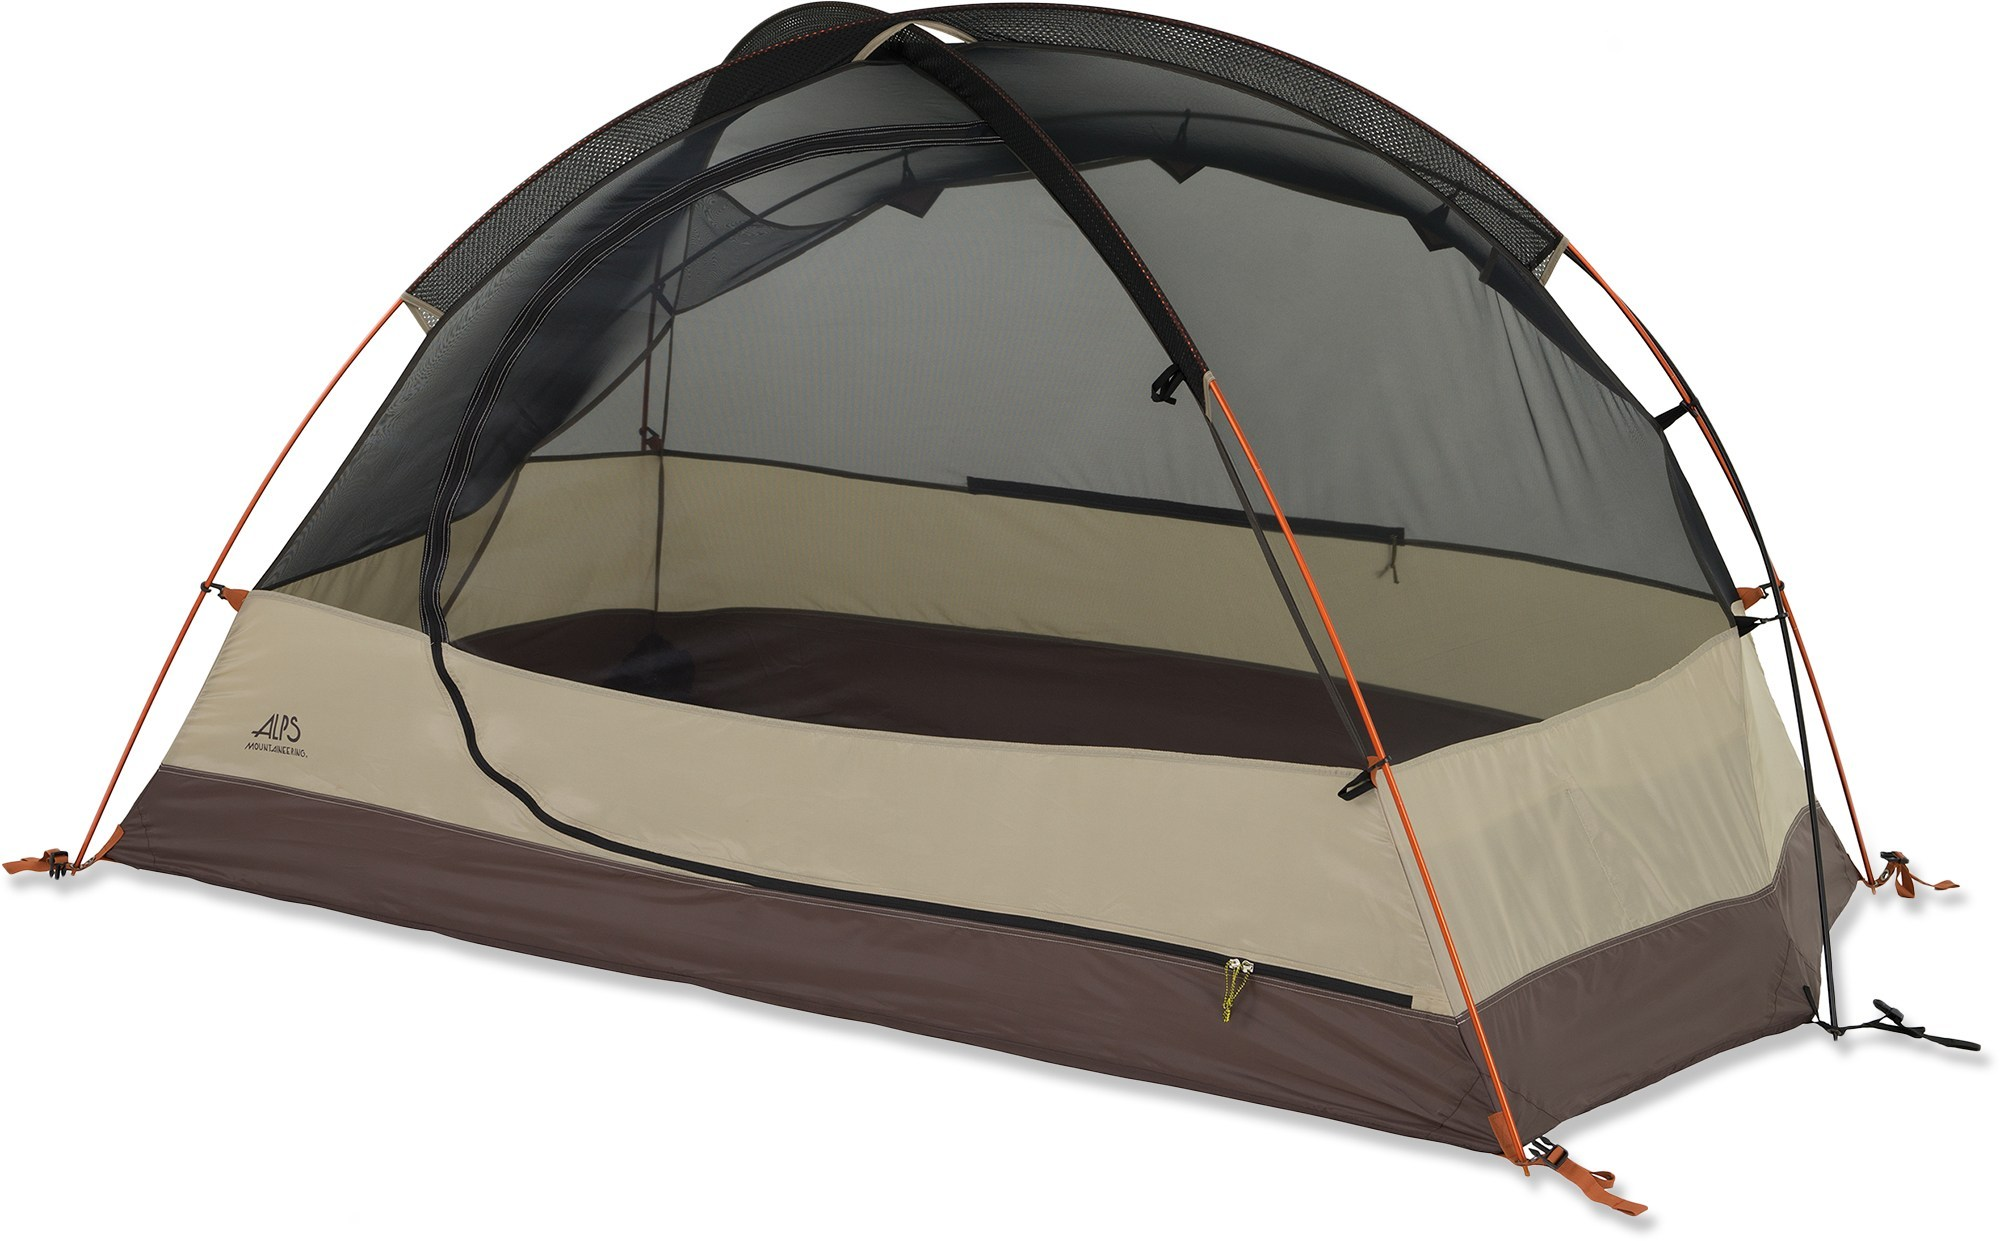 sc 1 st  Thrill On & ALPS Mountaineering Galaxy 2 Tent - $159.73 - Thrill On